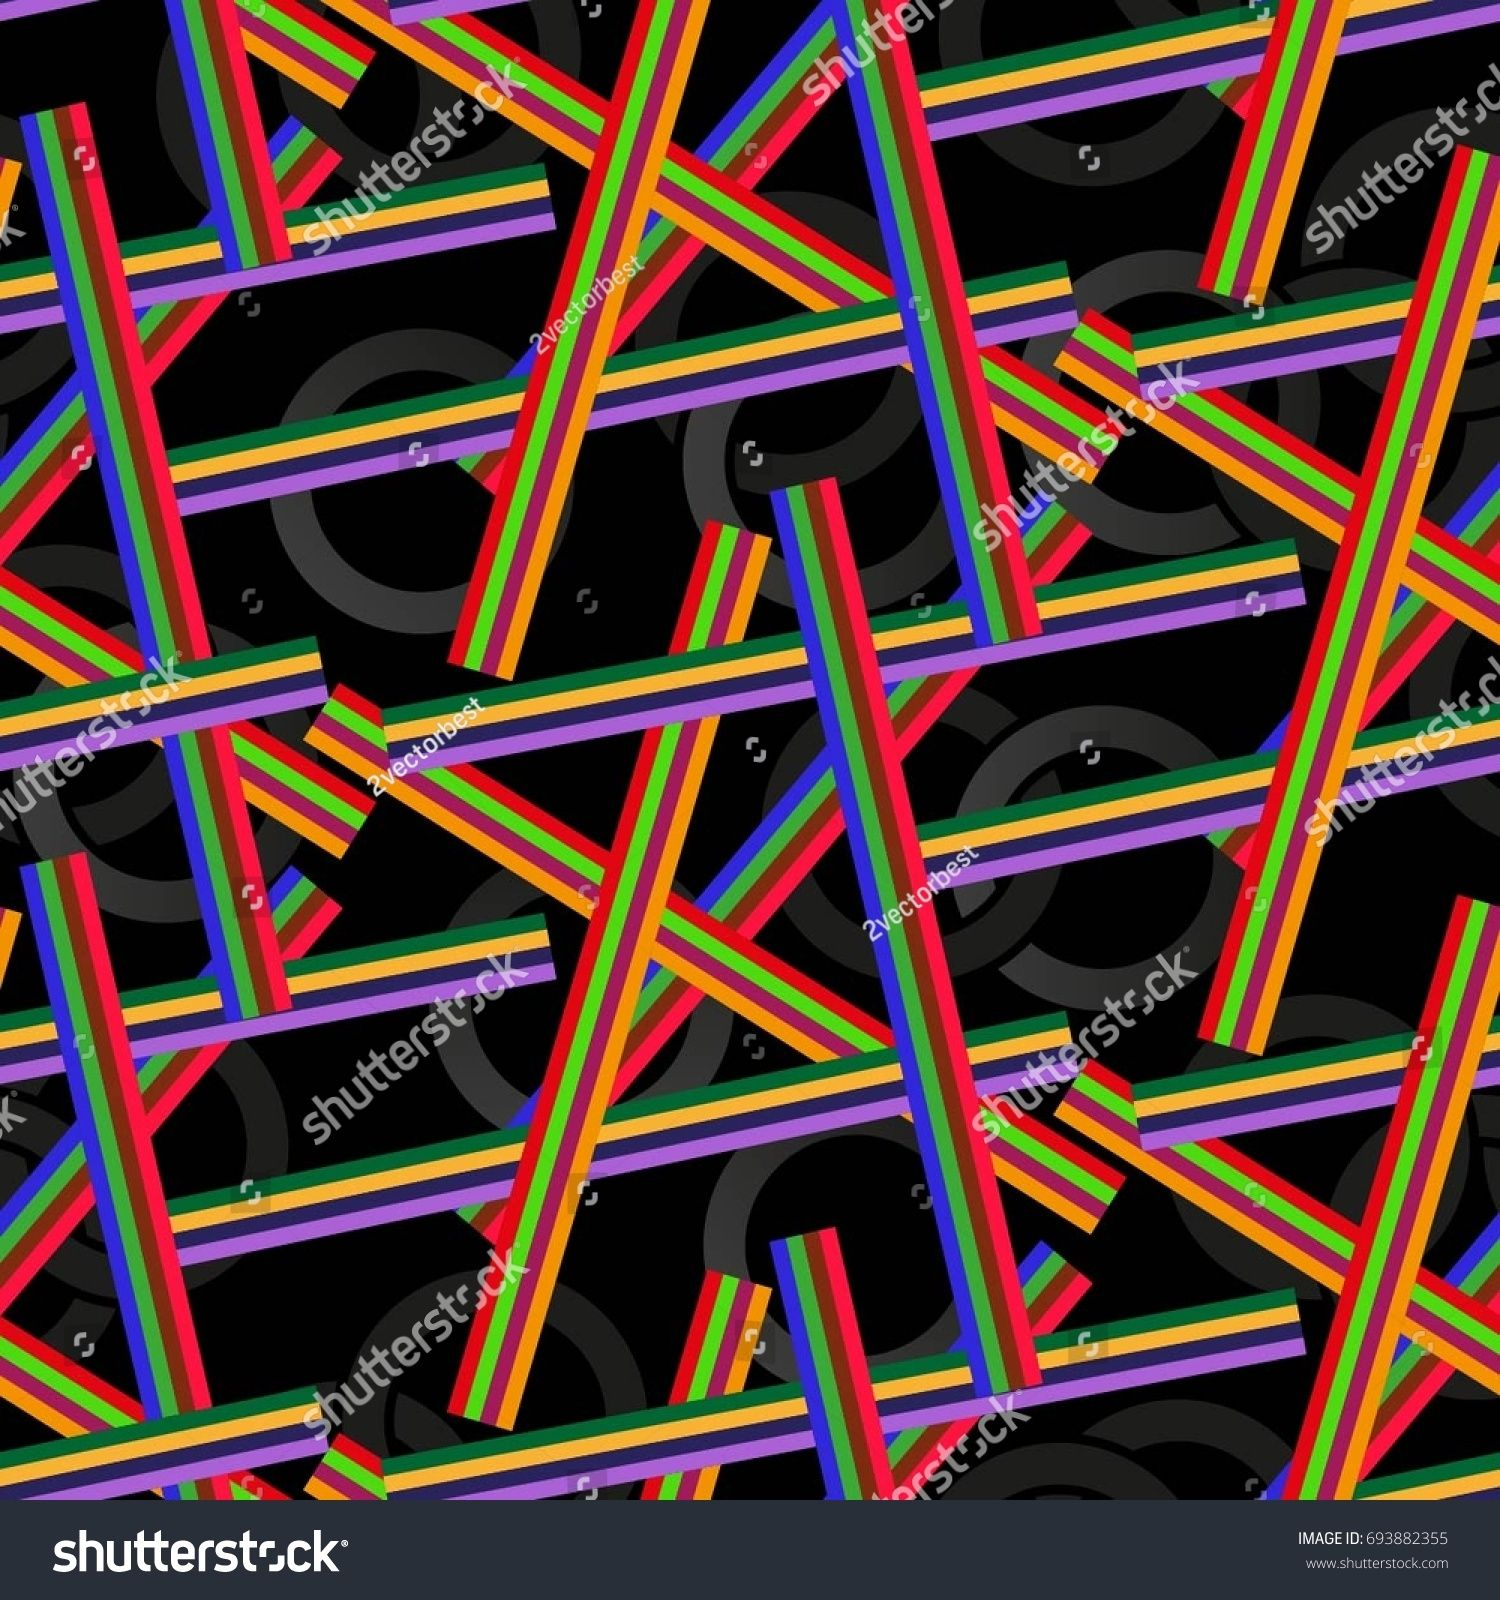 Endless Abstract Pattern Background Texture Vector Illustration